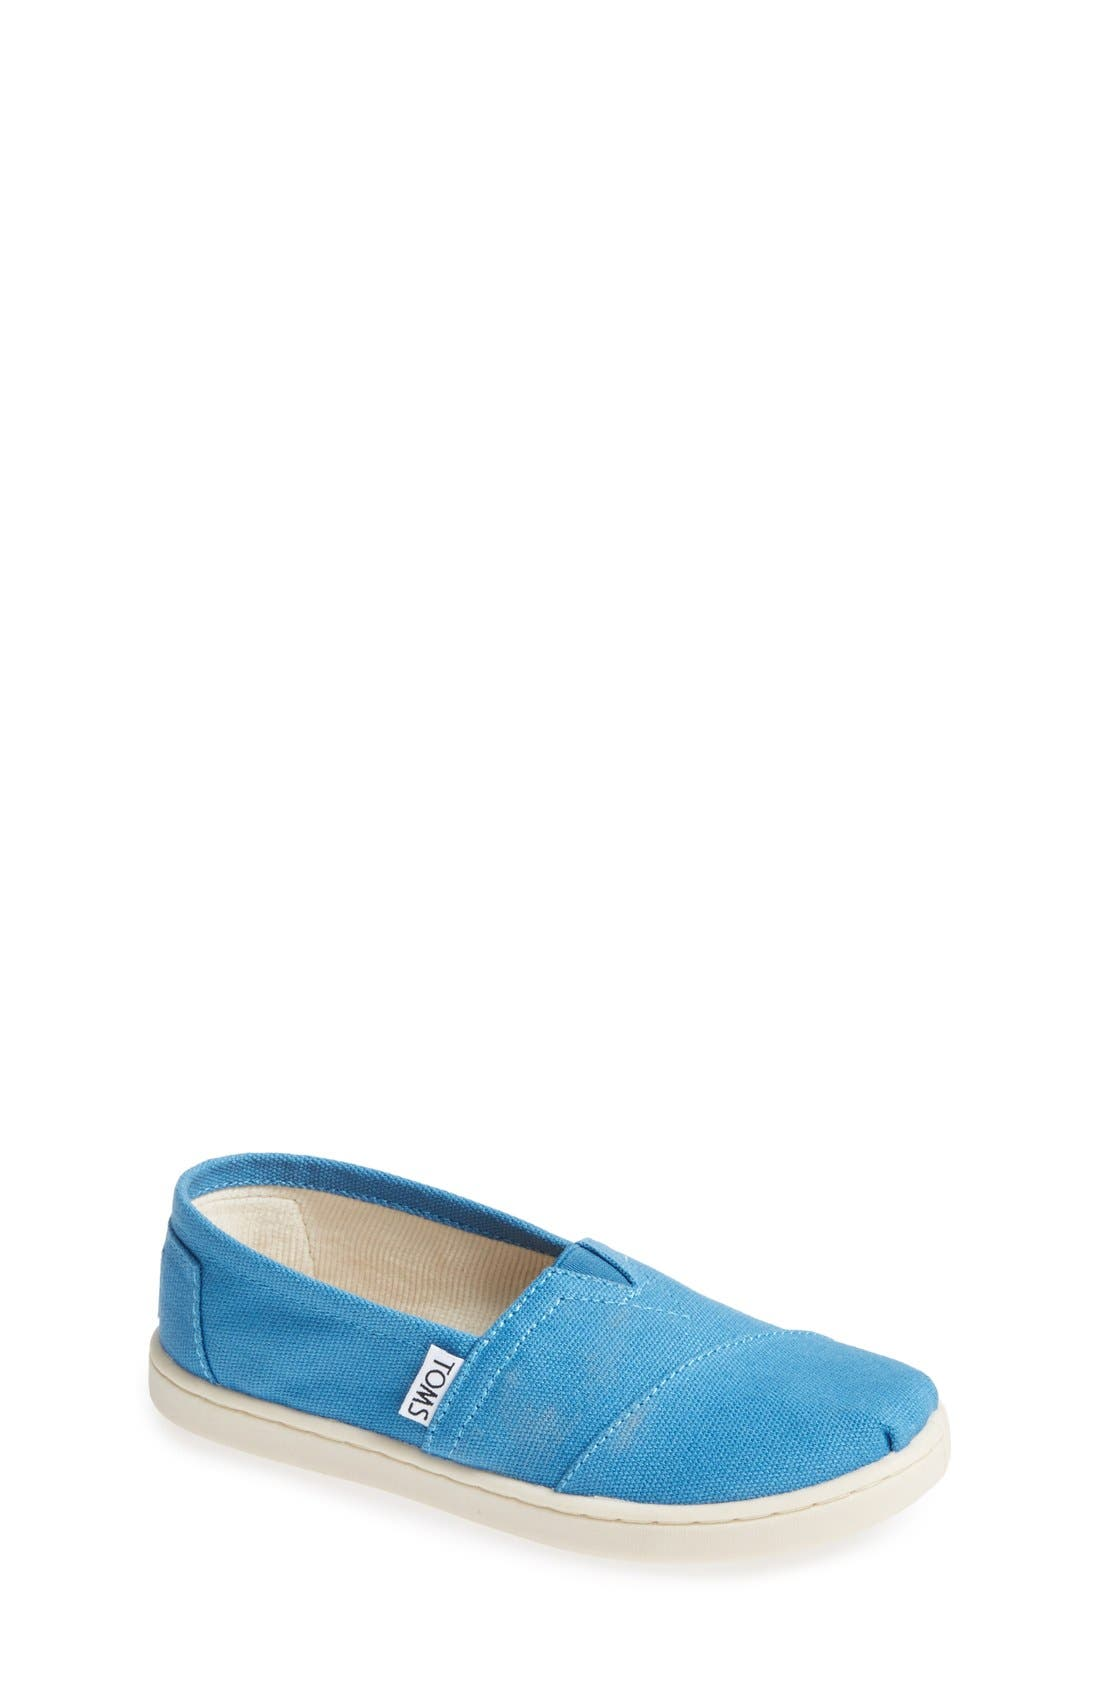 Alternate Image 1 Selected - TOMS 'Classic - Youth' Canvas Slip-On (Toddler, Little Kid & Big Kid)